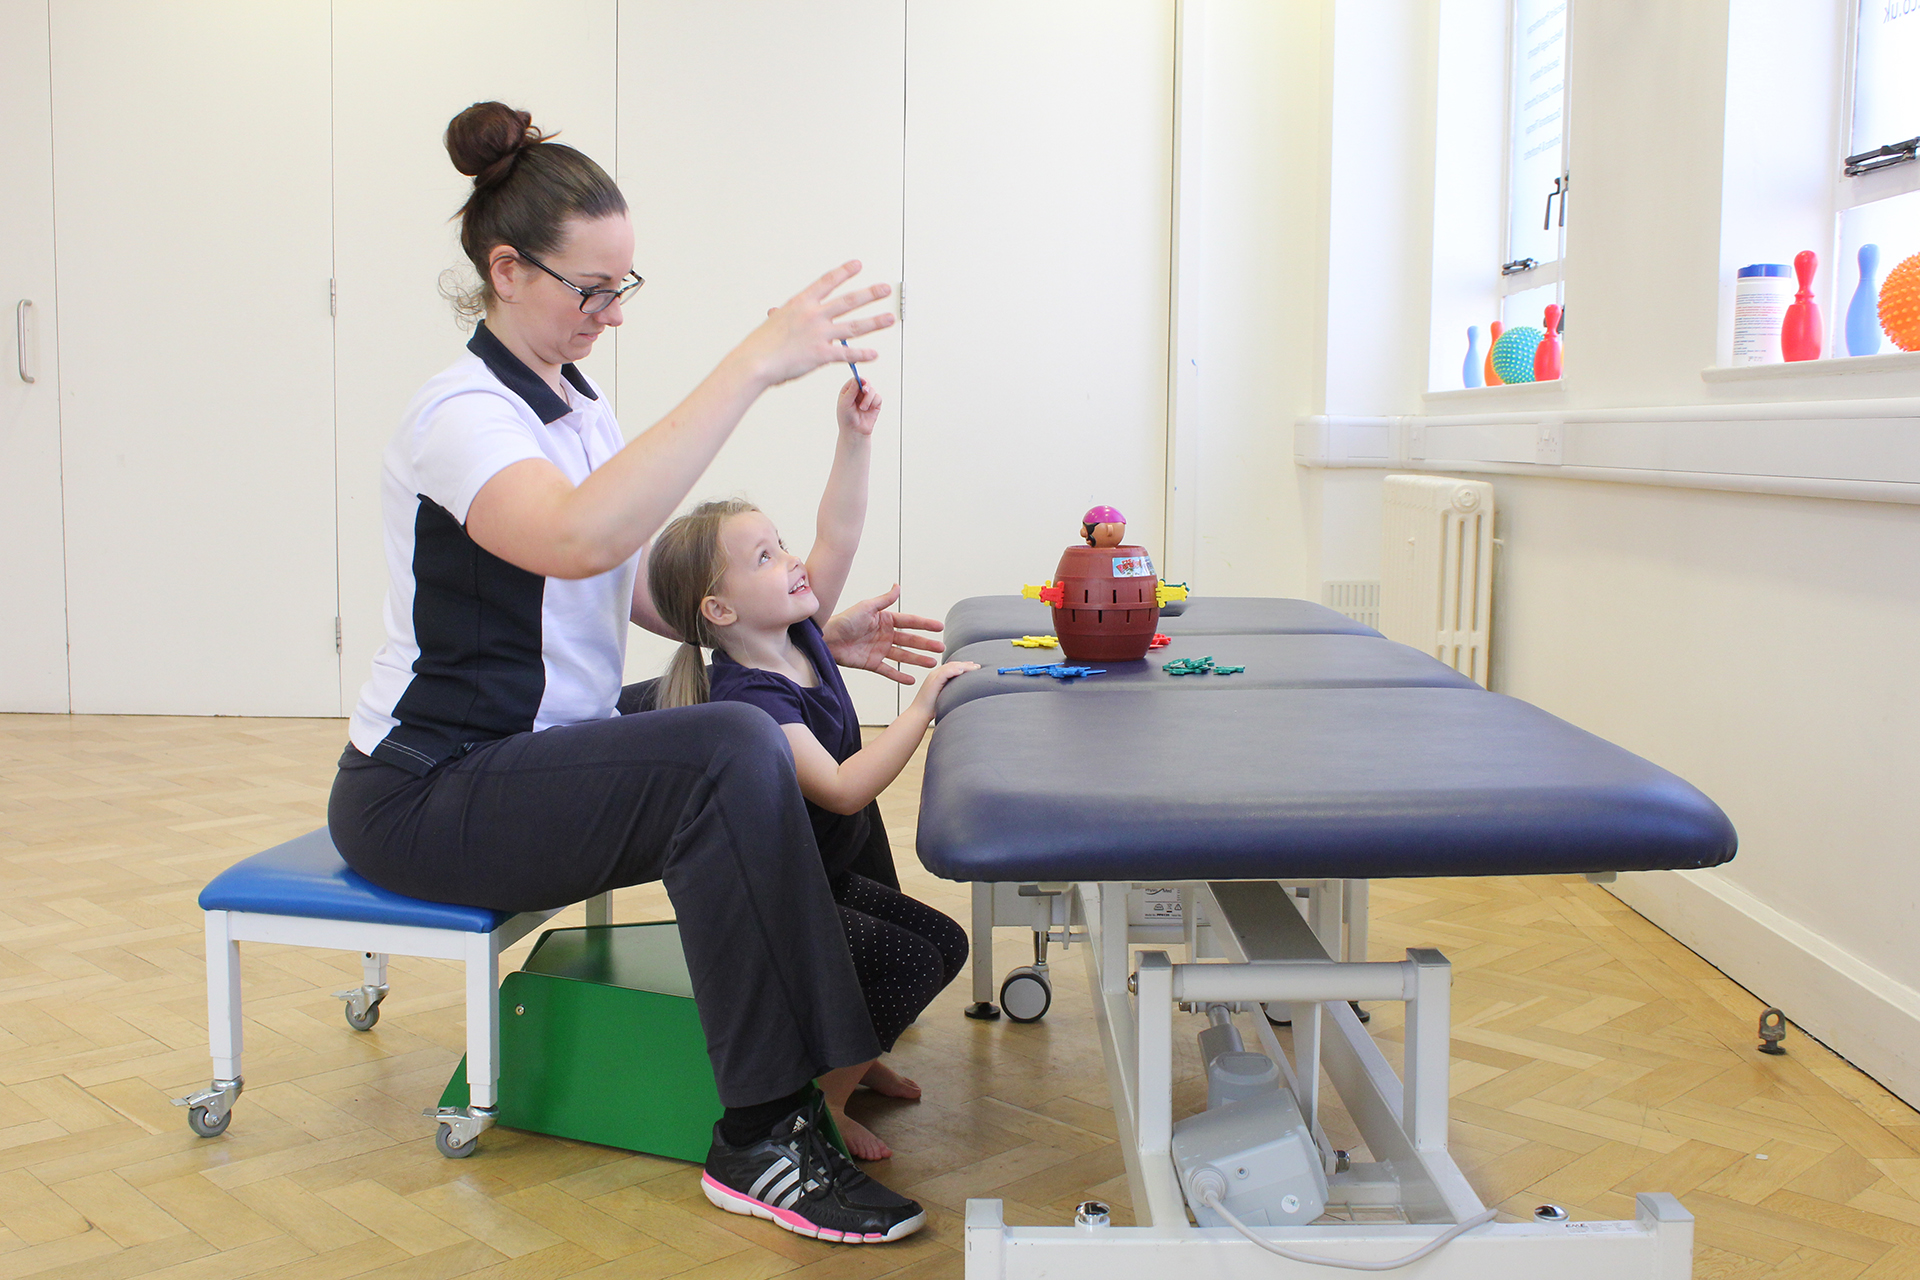 Charcot marie tooth Physiotherapy treatment | Charcot marie tooth disease |  Muscular disorders | Conditions we treat | Paediatrics | Manchester Neuro  Physio | Neurological Physiotherapy for Adults and Children across the  North West.